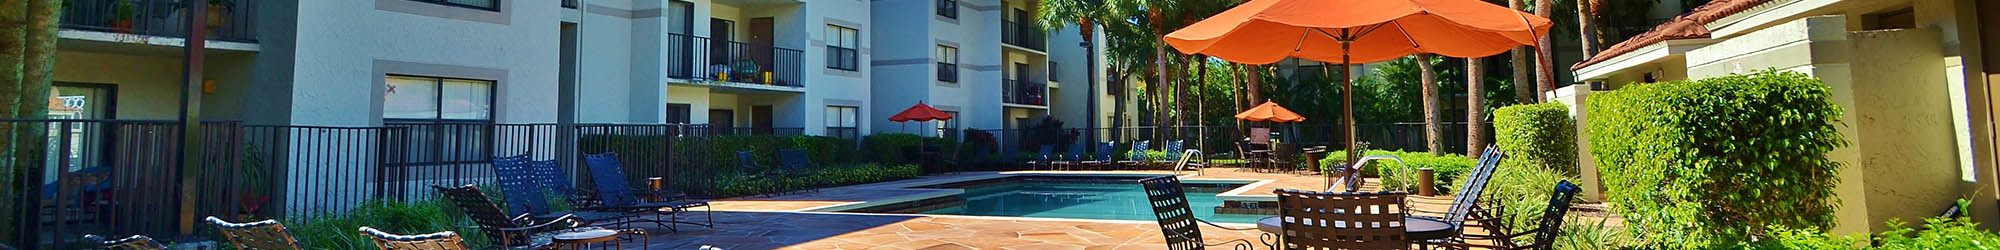 Apply to live at our apartments in Boynton Beach